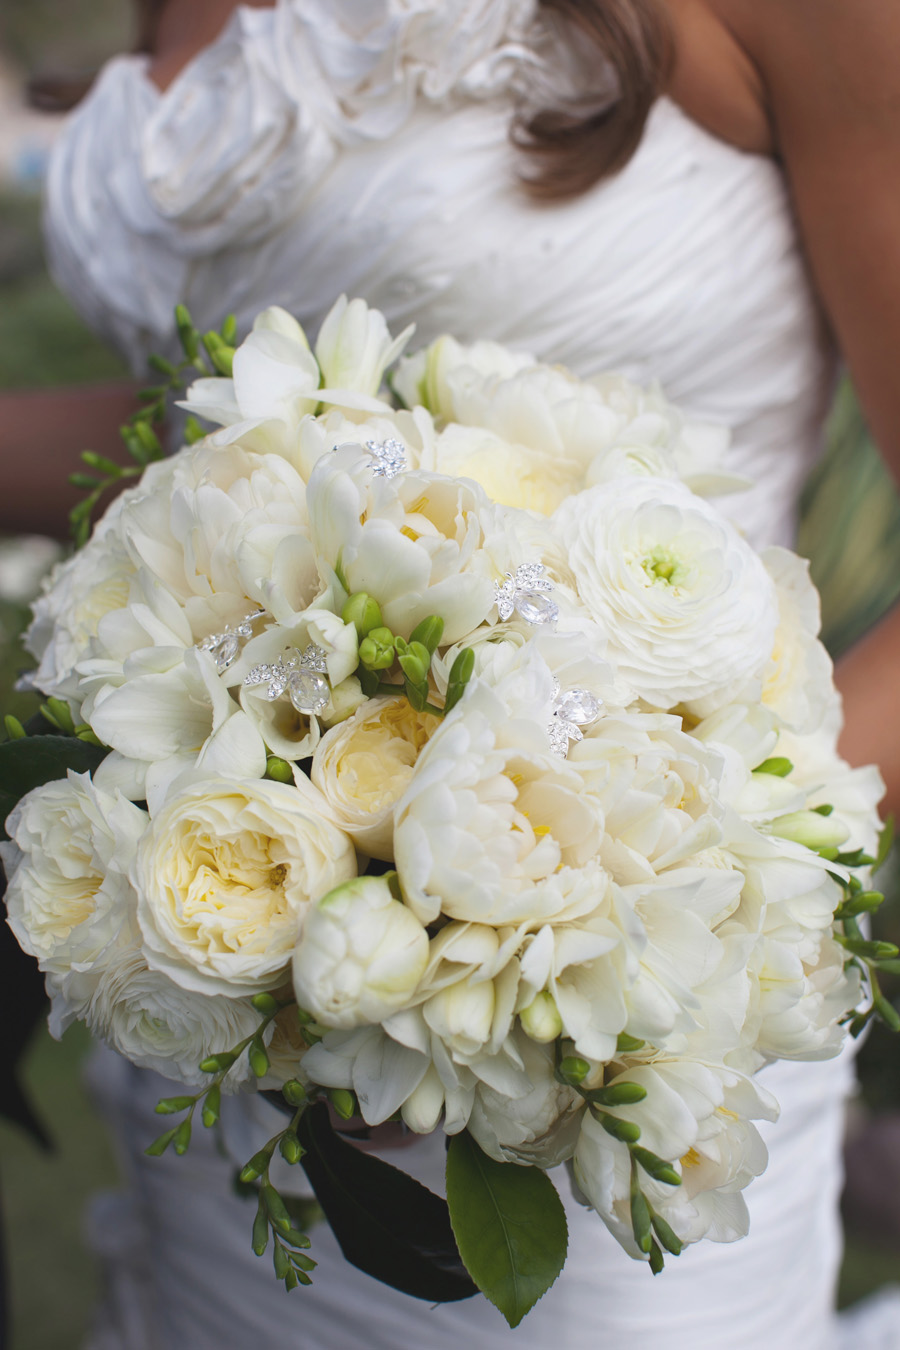 white freesia ranunculus rose wedding bouquet elizabeth anne designs the wedding blog. Black Bedroom Furniture Sets. Home Design Ideas